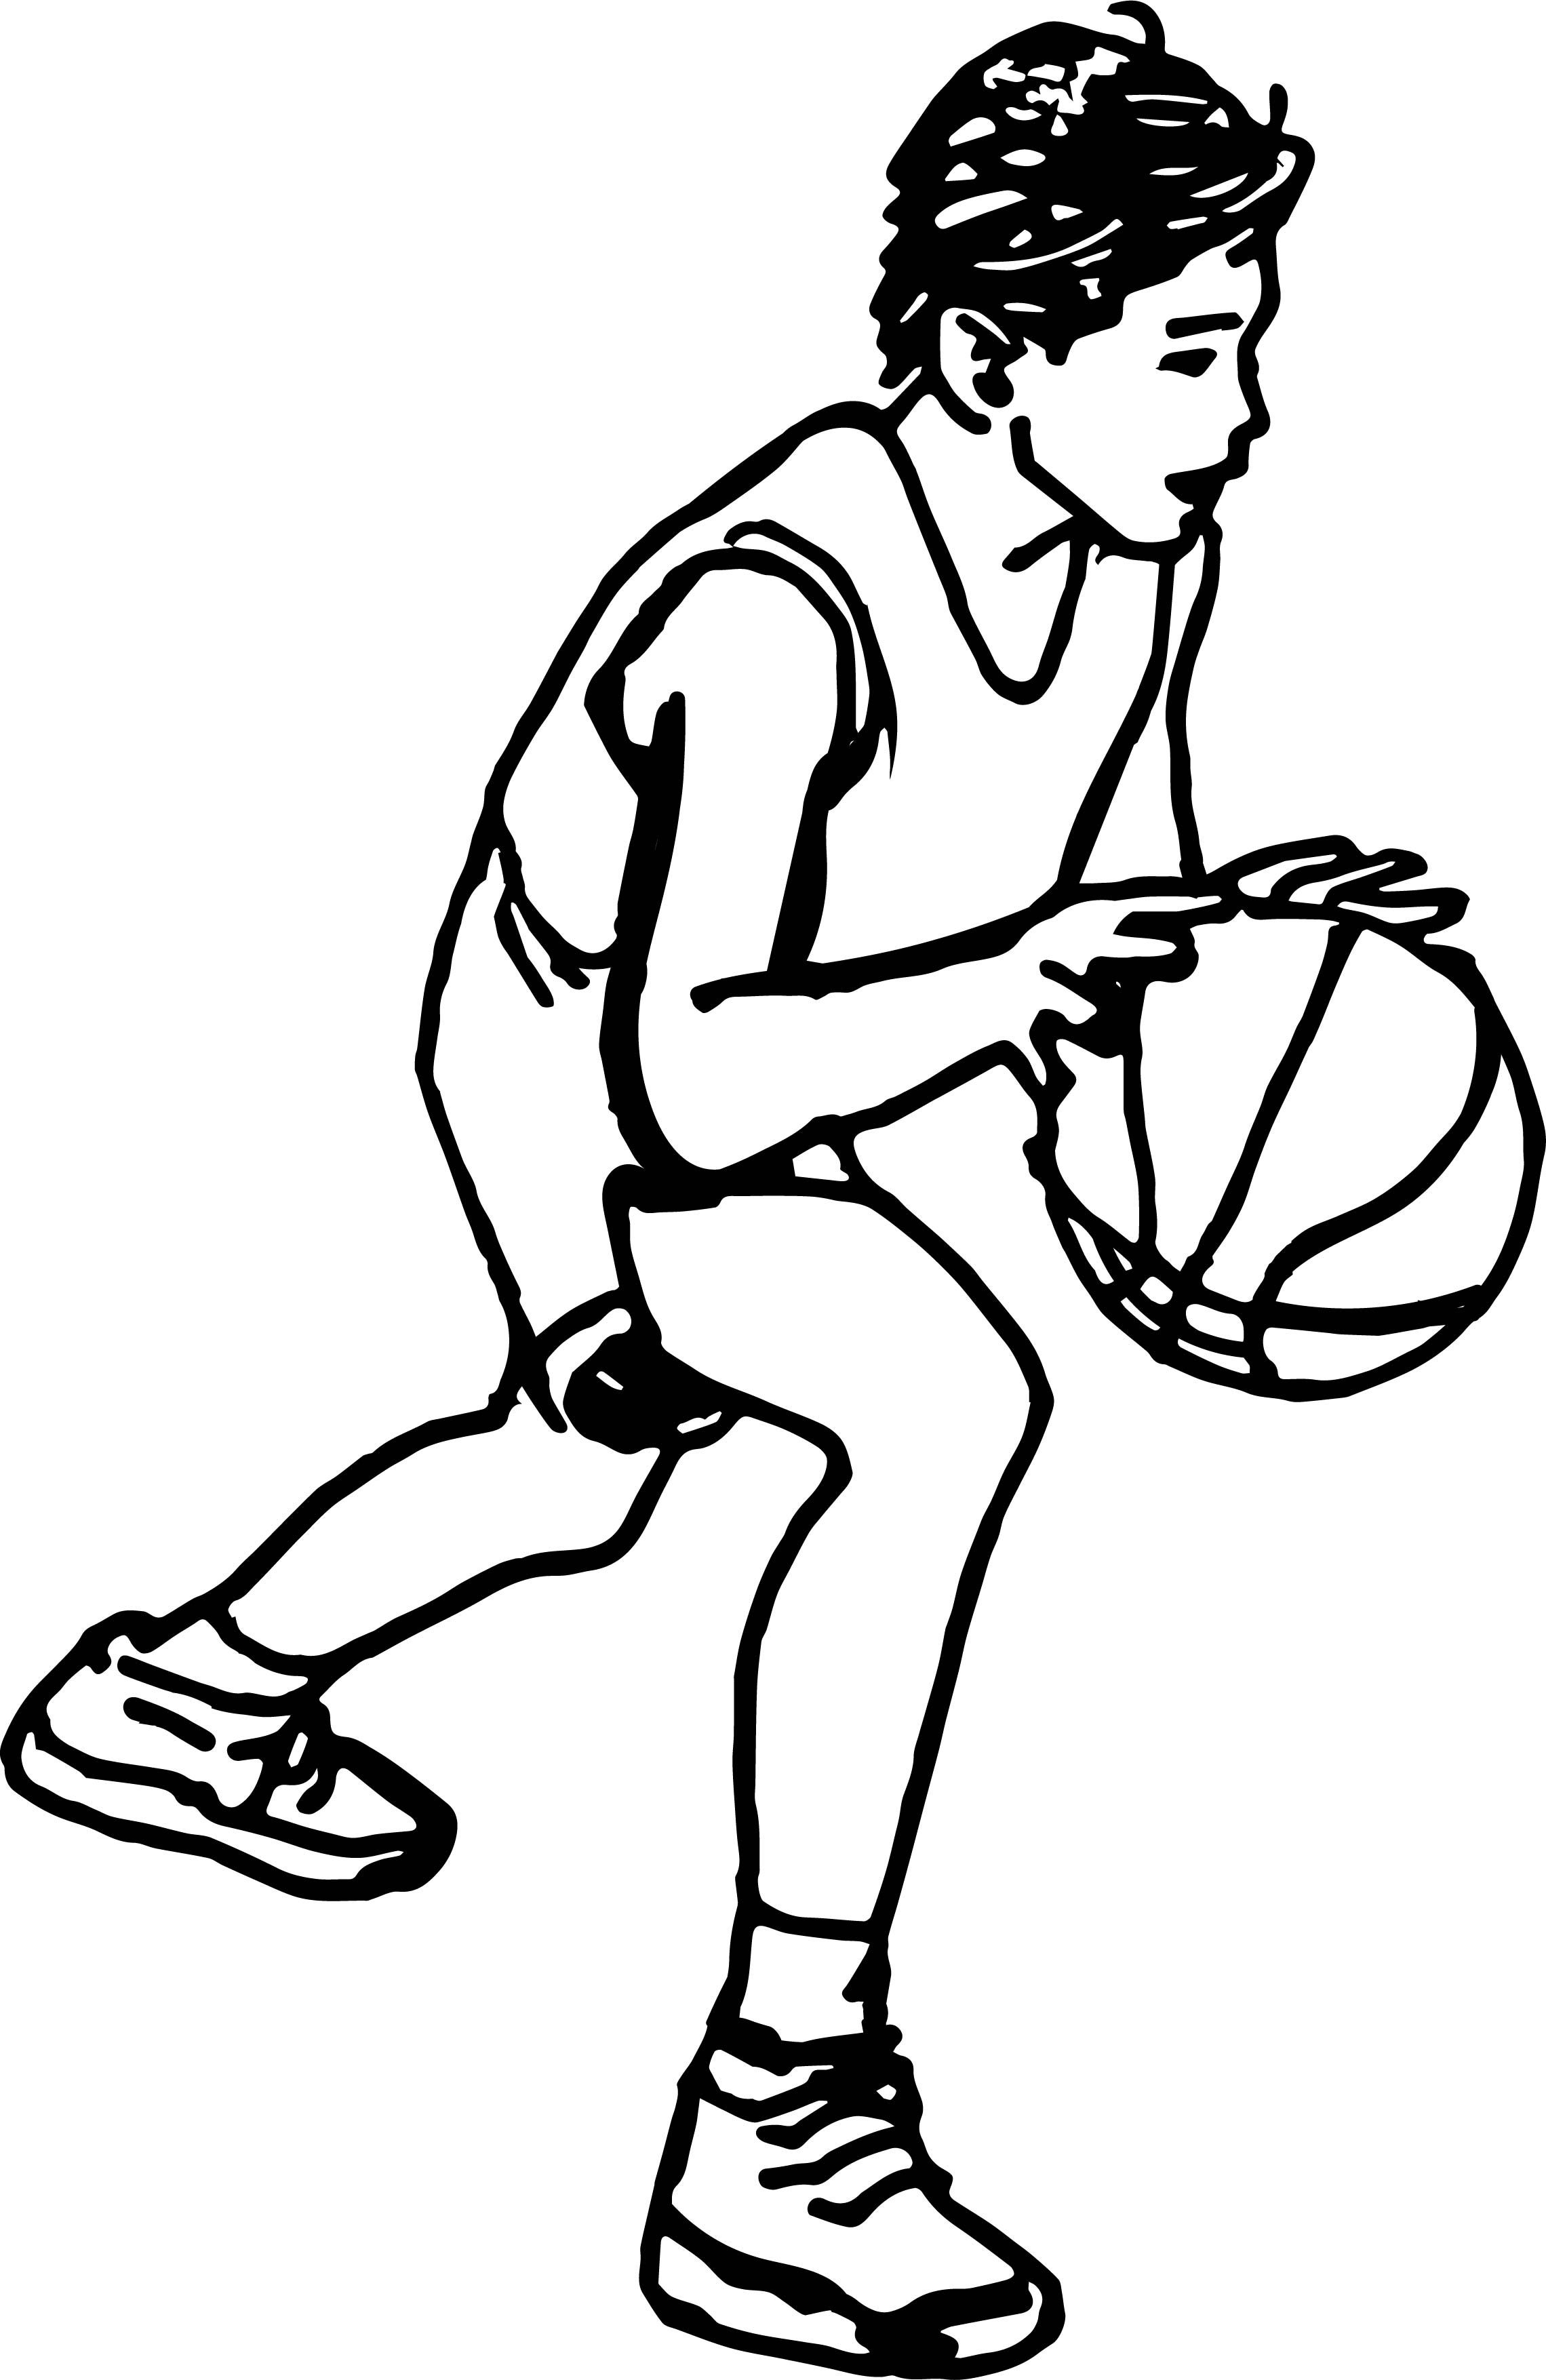 Awesome Cartoon Boy Playing Basketball Coloring Page Cartoon Boy Coloring Pages For Kids Coloring Pages